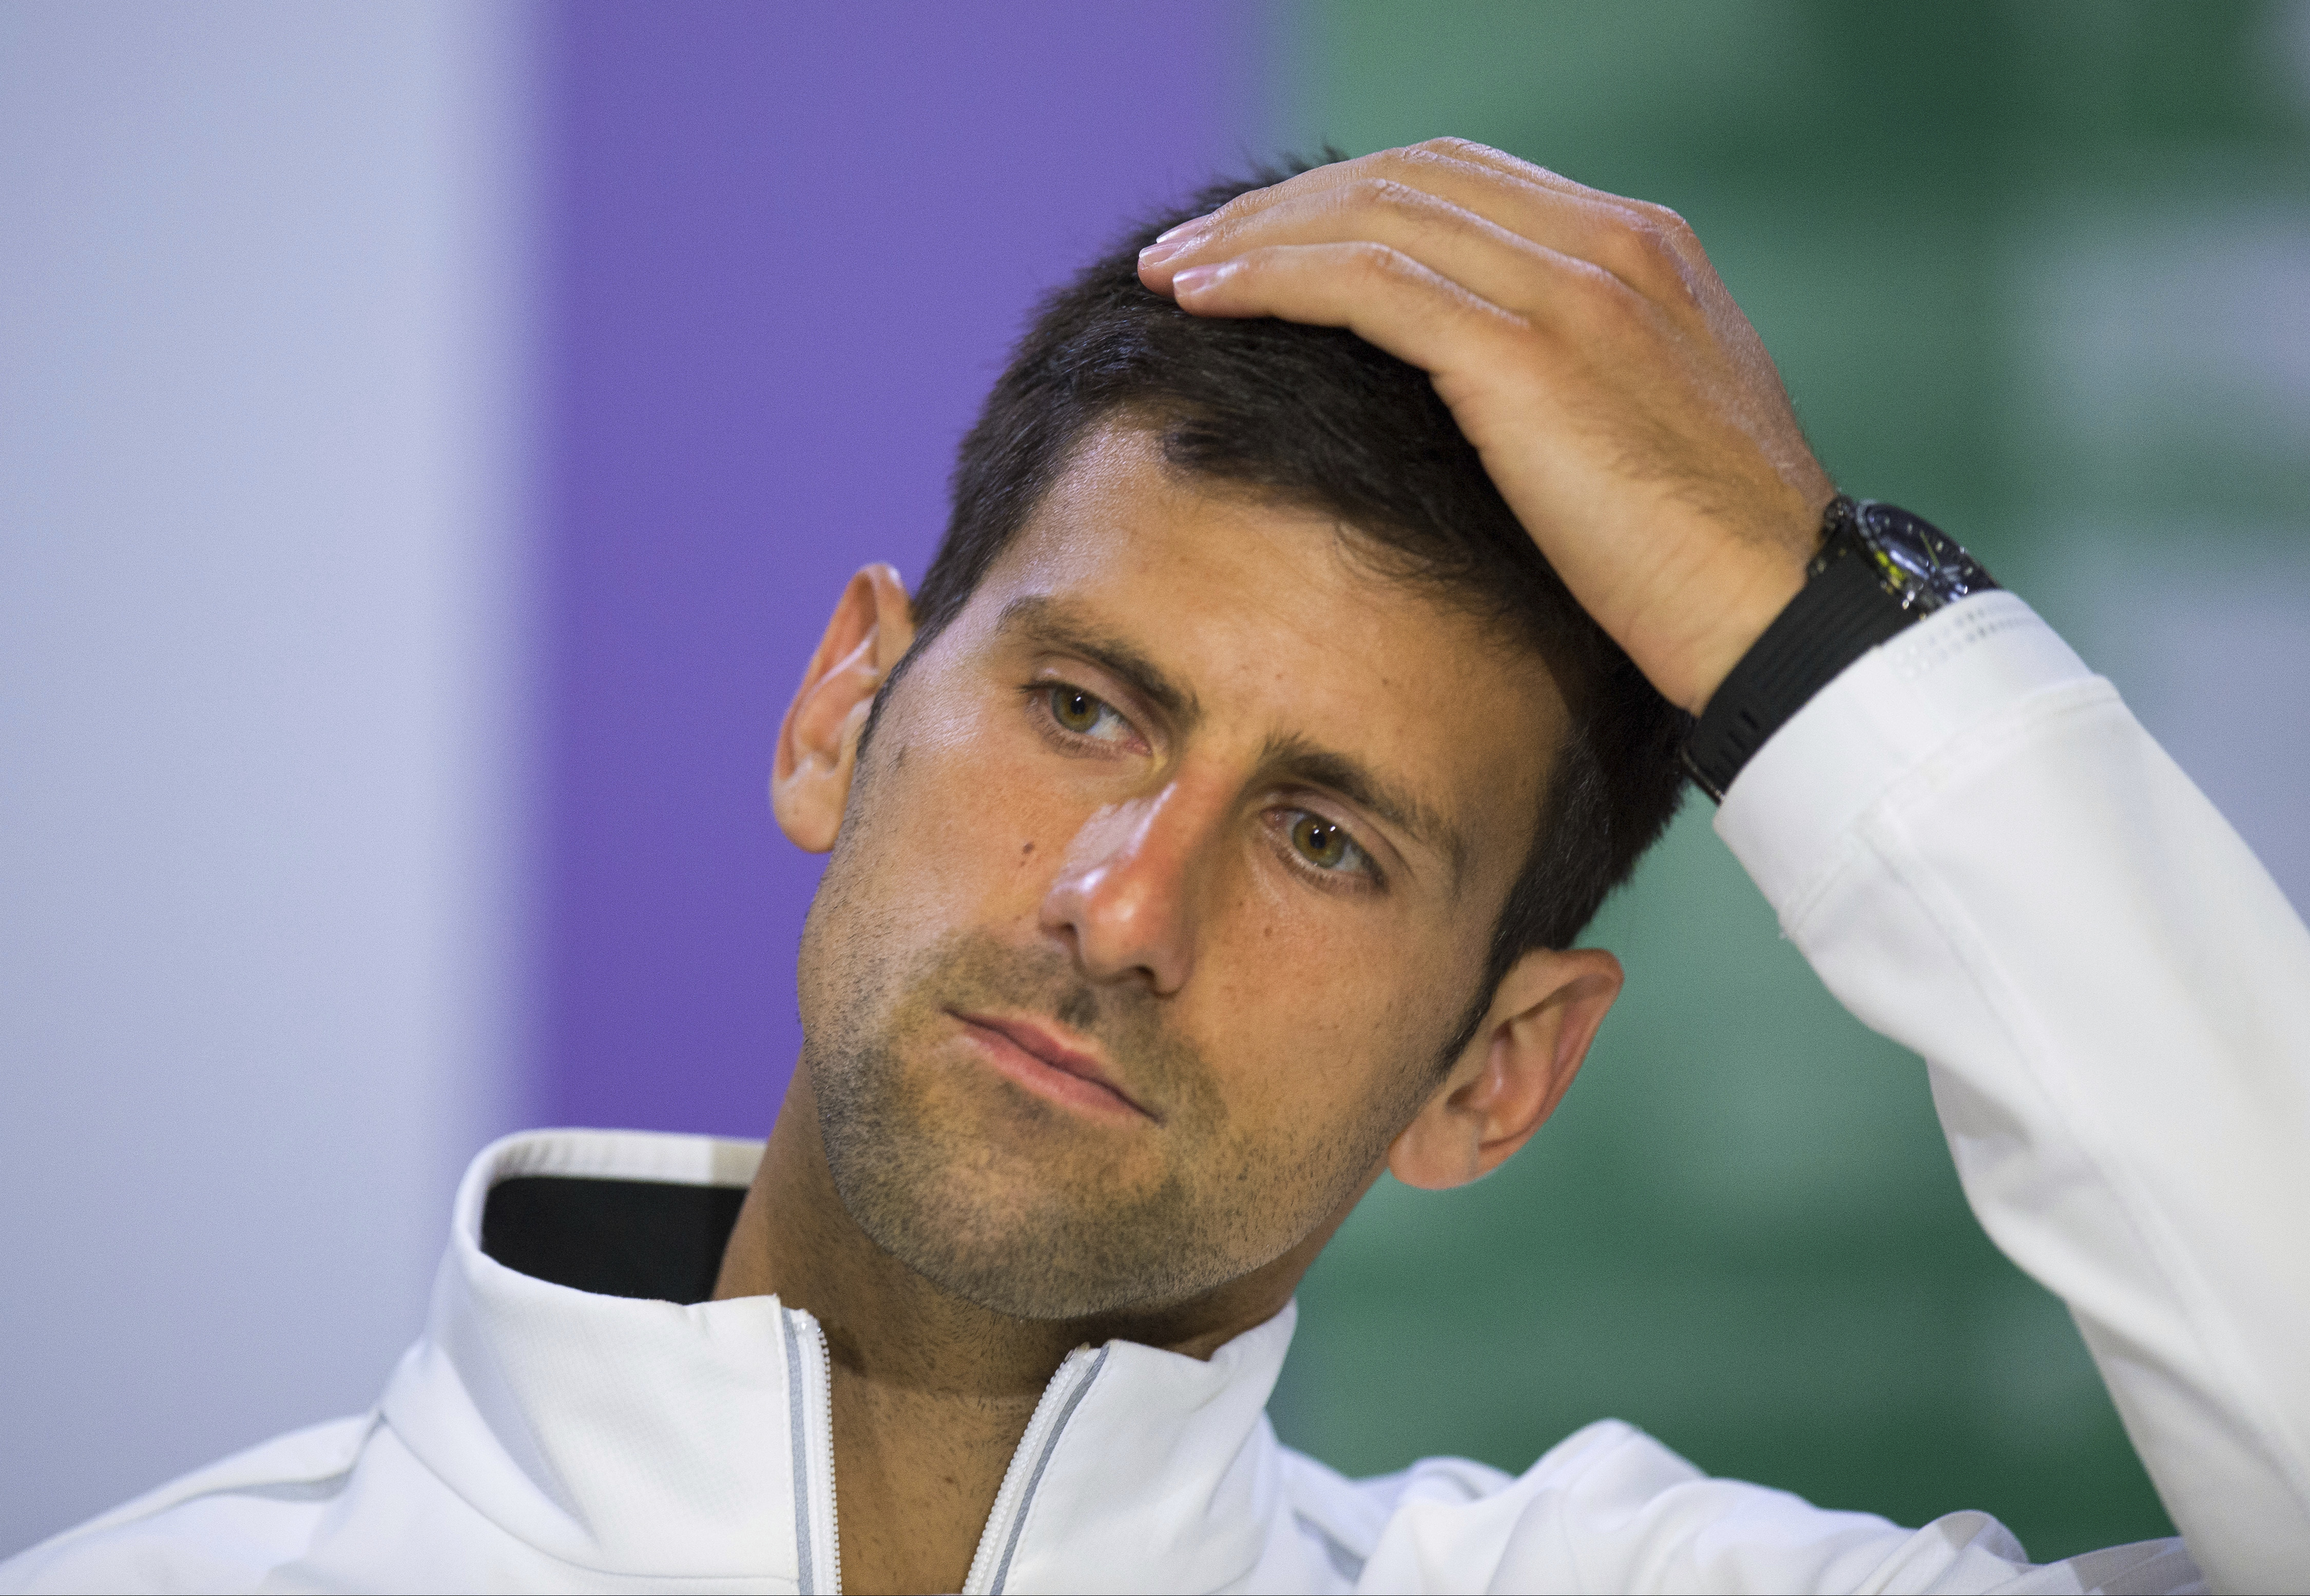 FILE - This is a Wednesday, July 12, 2017 file photo of  Serbia's Novak Djokovic as he gestures during a press conference after losing his Men's Singles Quarterfinal Match against Czech Republic's Tomas Berdych on day nine at the Wimbledon Tennis Champion